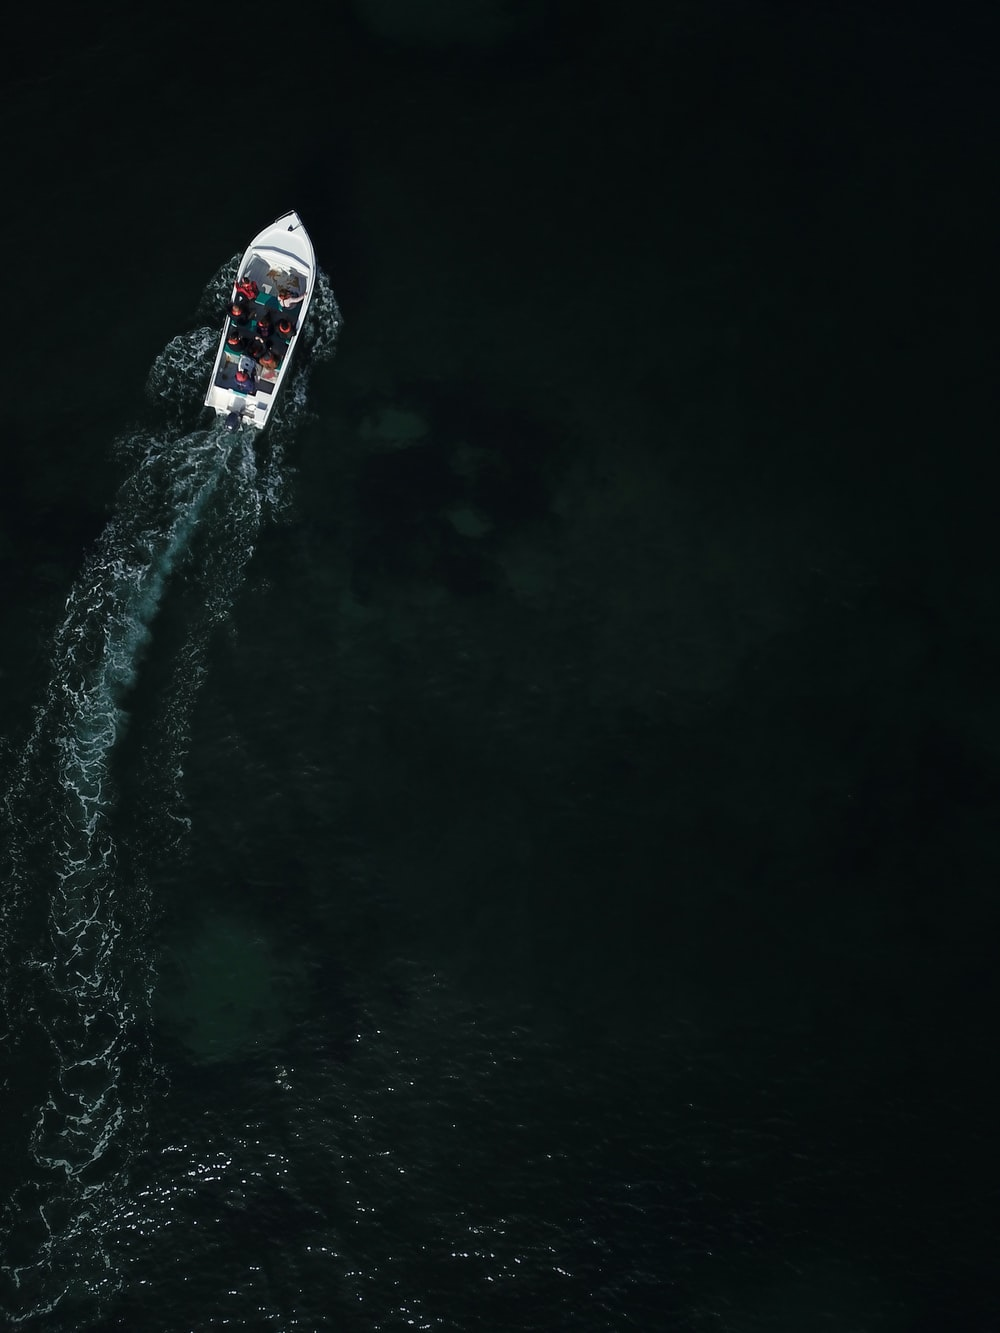 bird's-eye-view photo of white boat